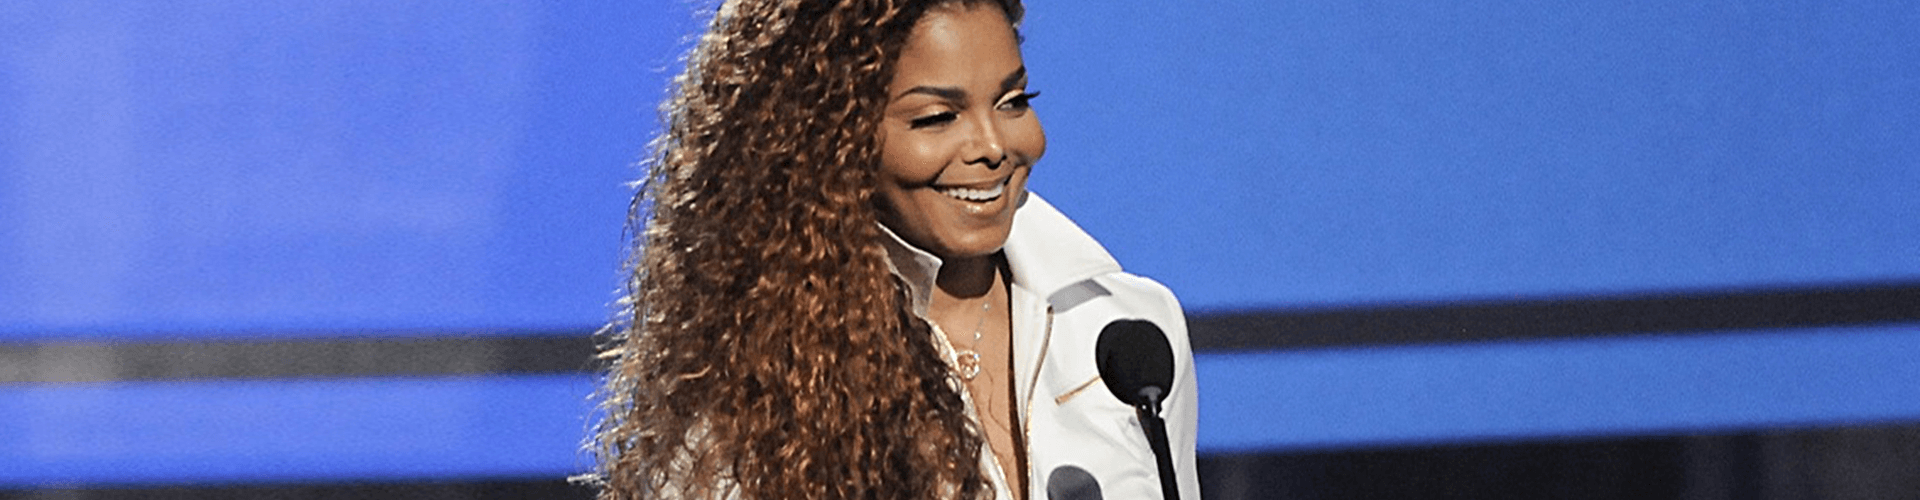 Janet Jackson at the BET awards 2015.